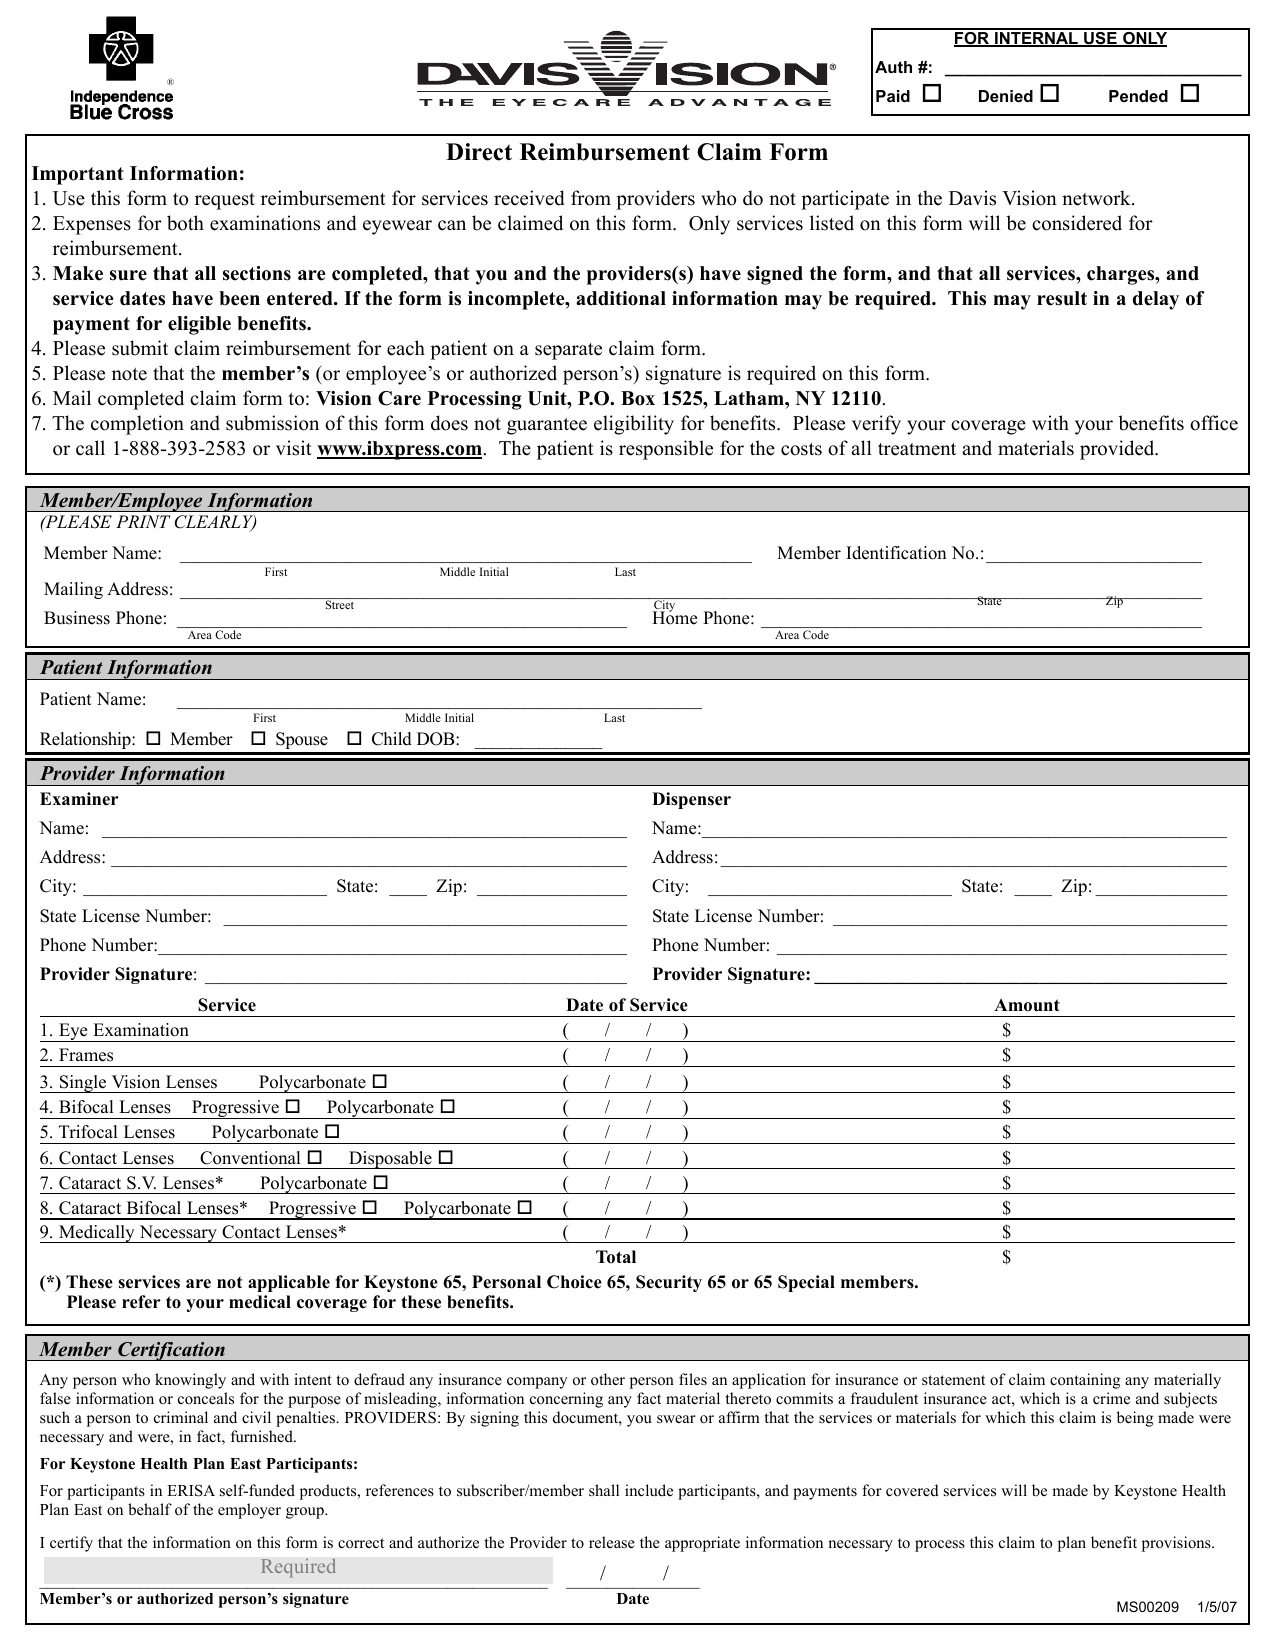 download davis vision claim form